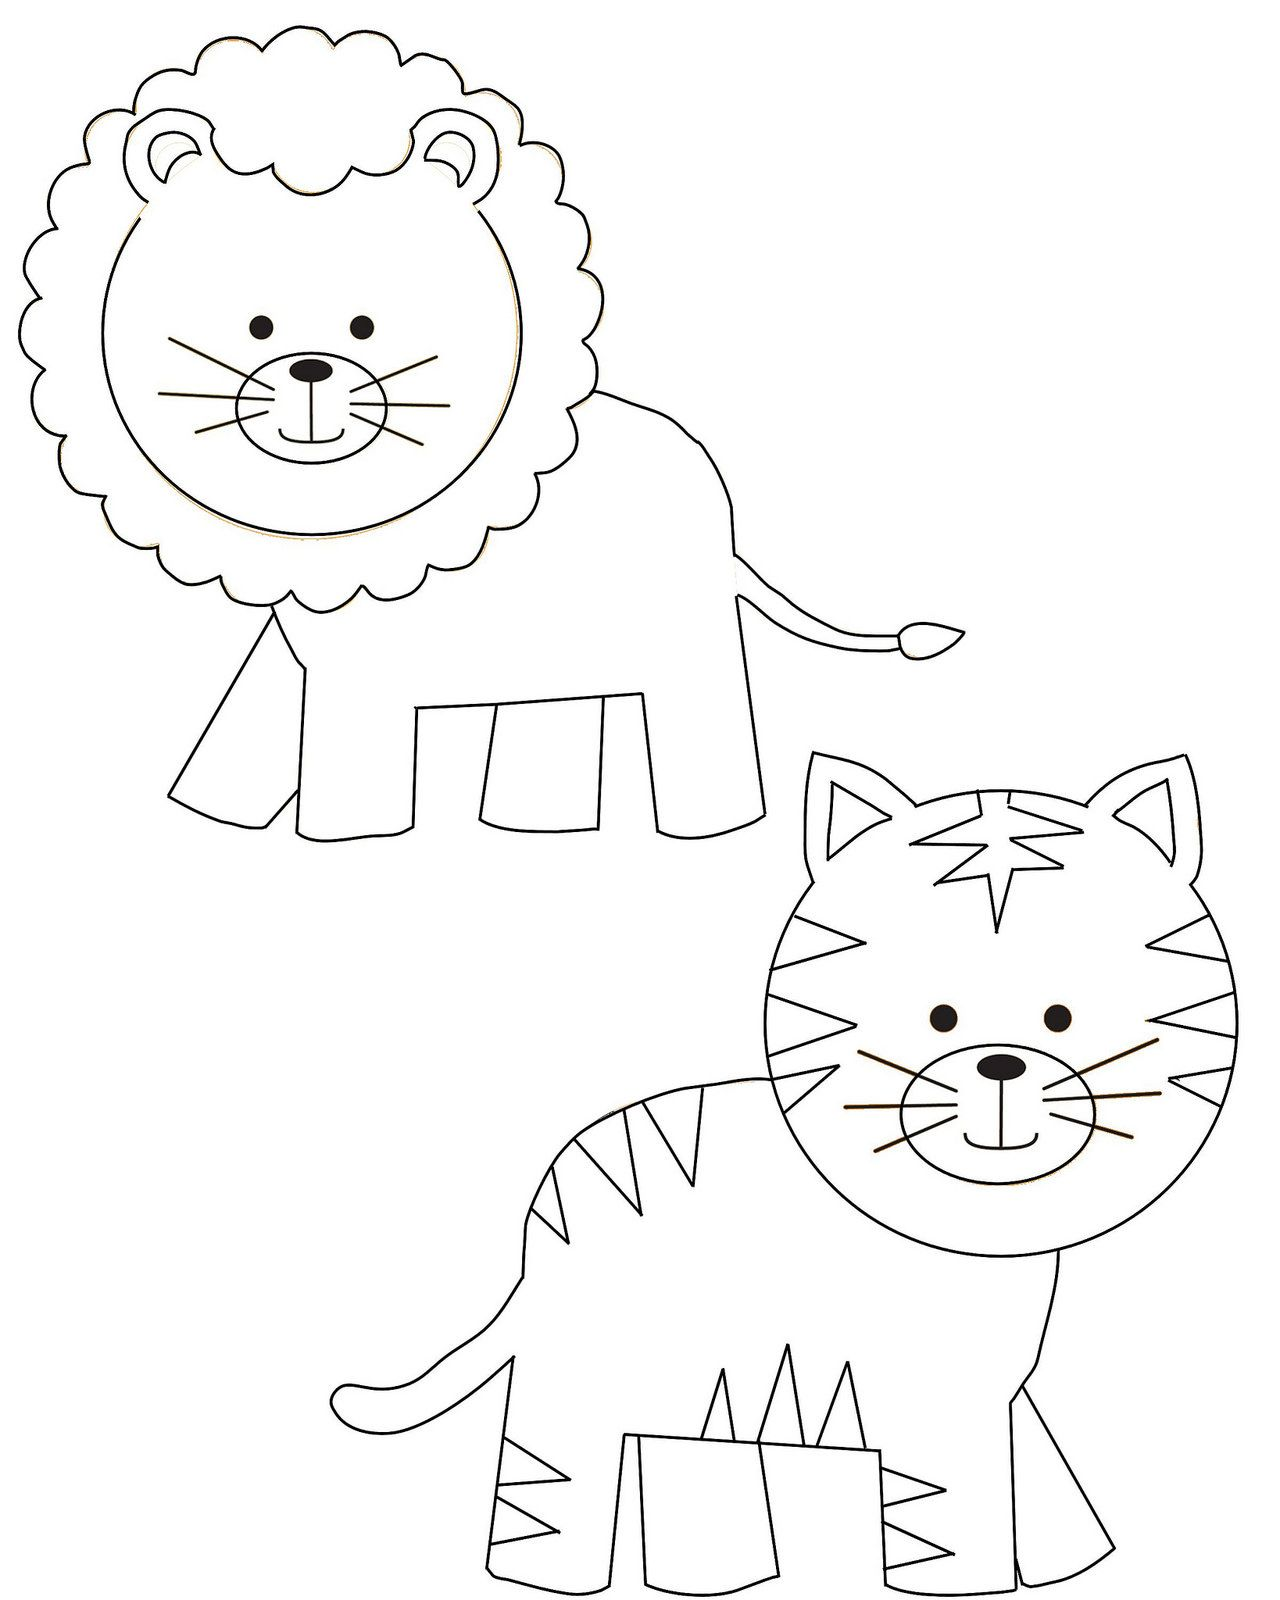 Template For Jungle Animals T Shirts Jungle Animals Animal Tshirt Animal Templates